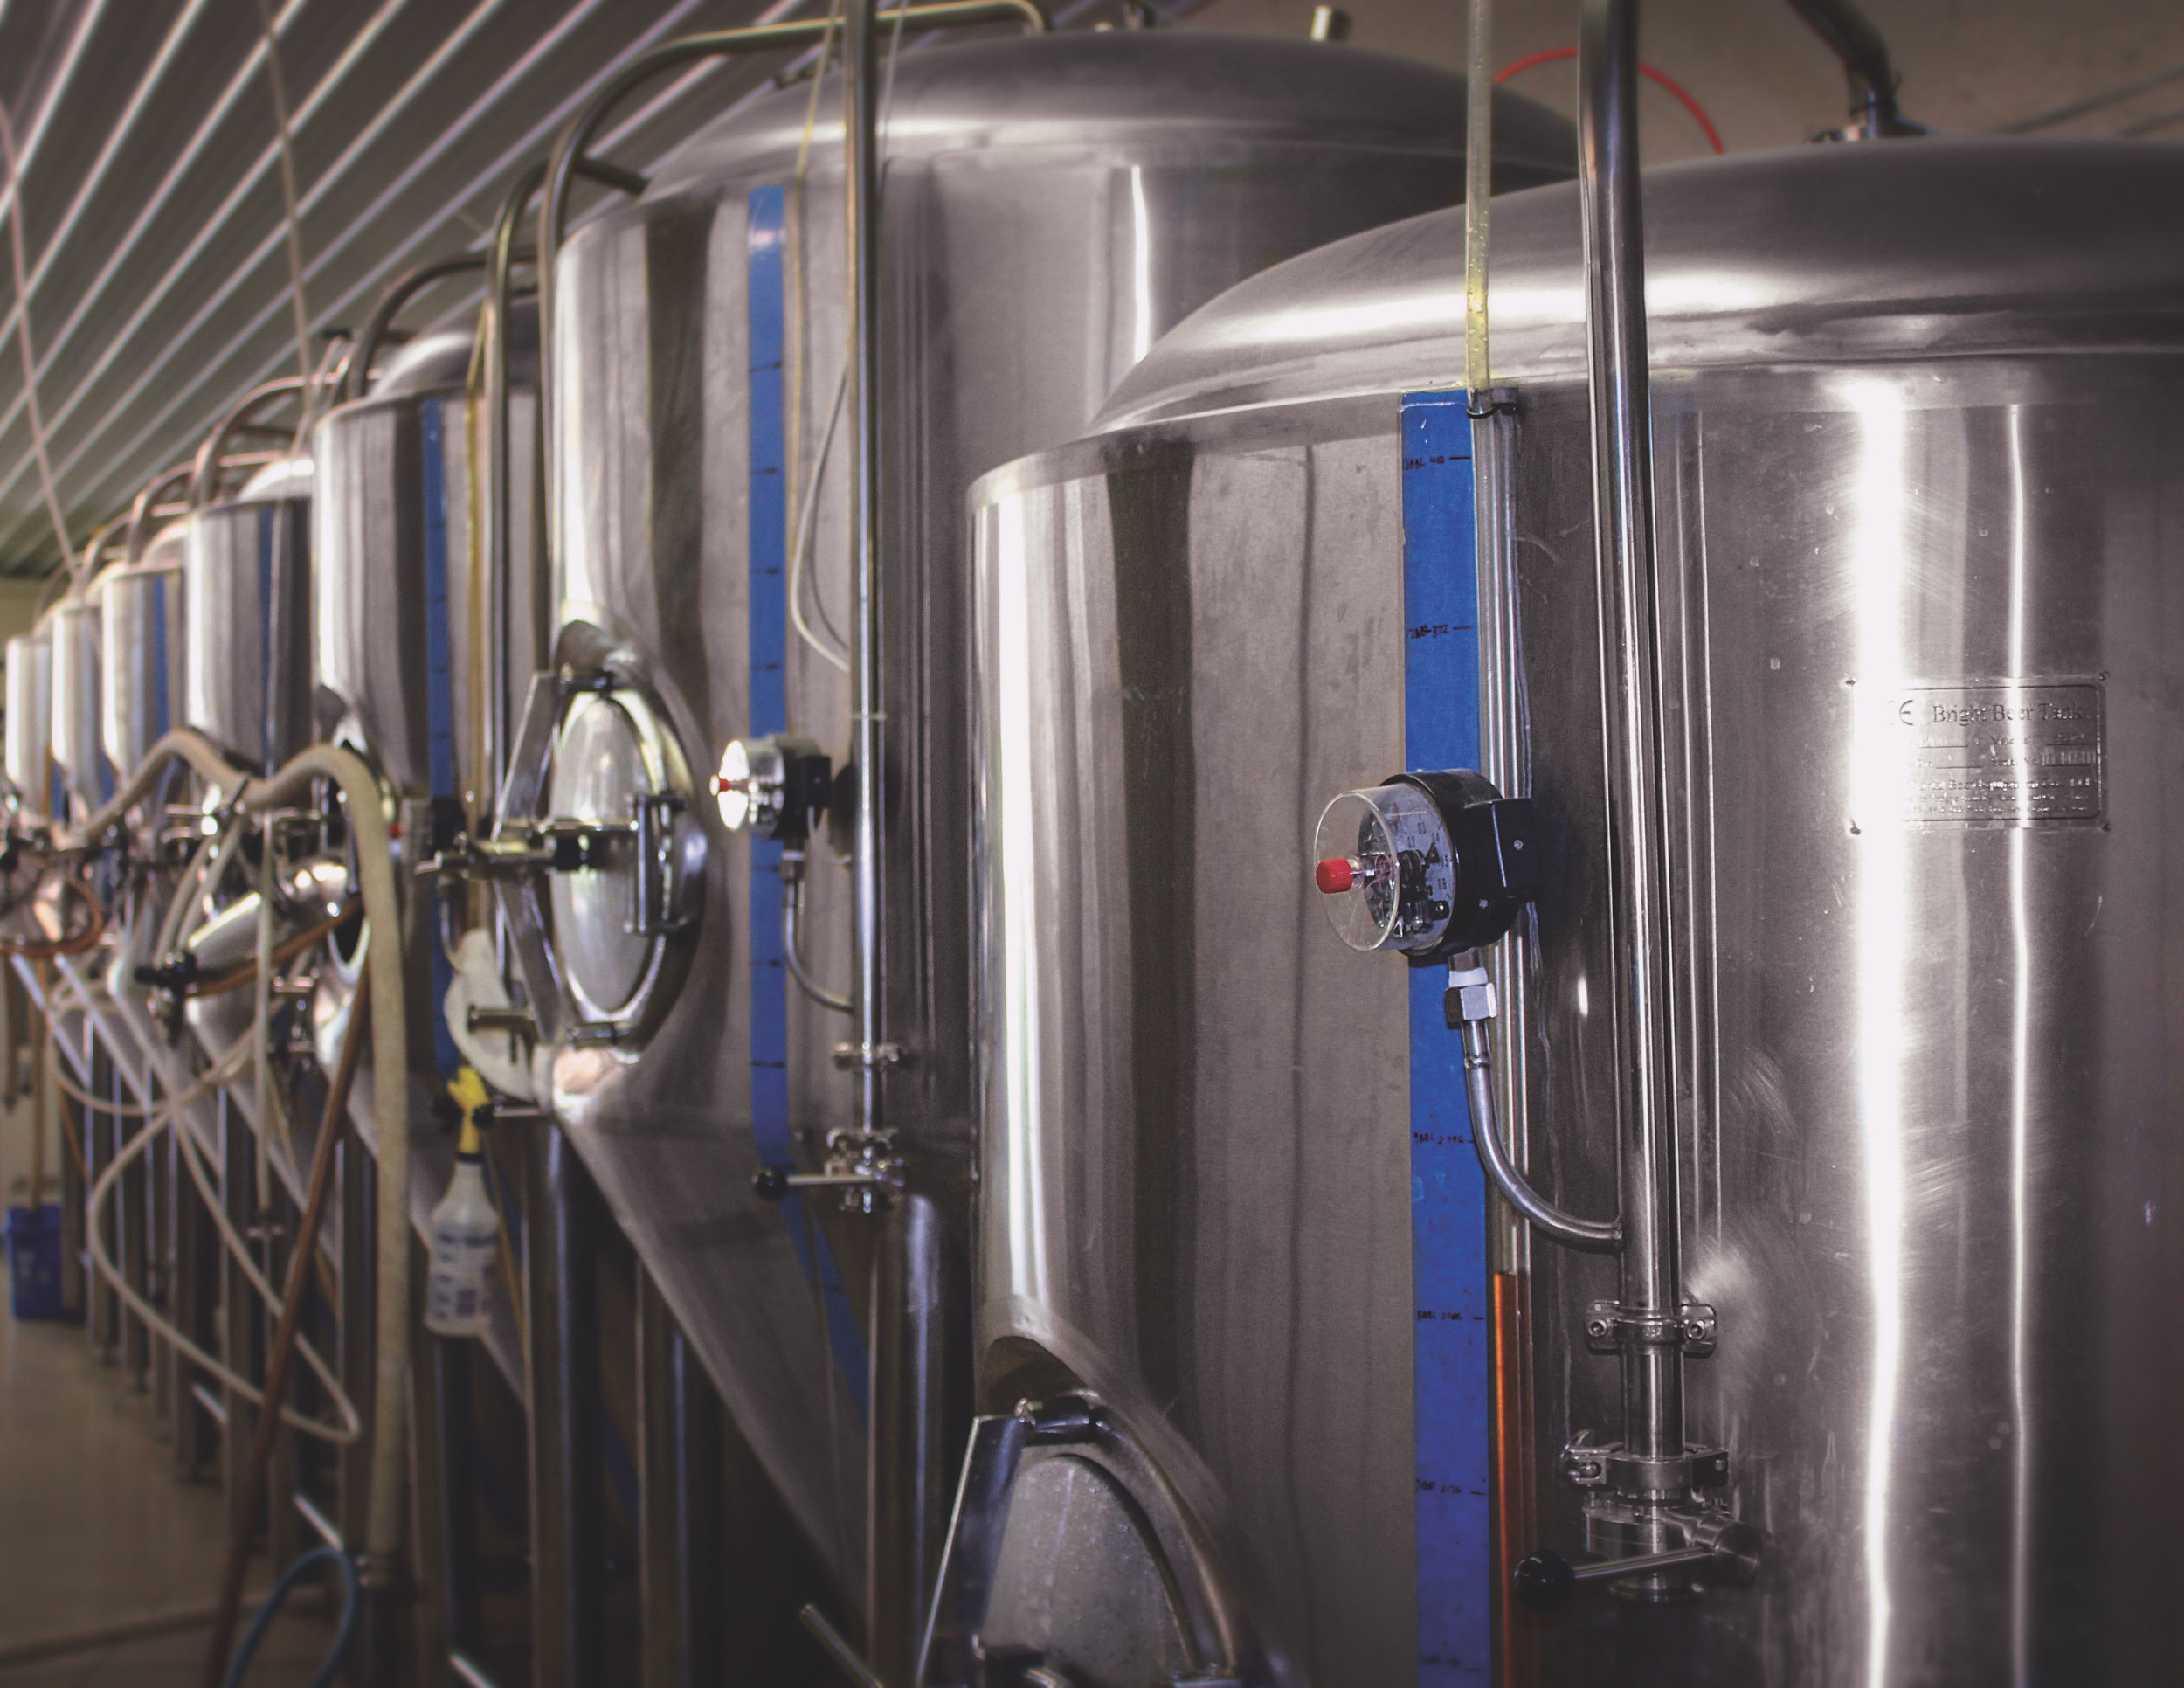 A snapshot of just one of the innovative steps of brewing beer using dairy technology.